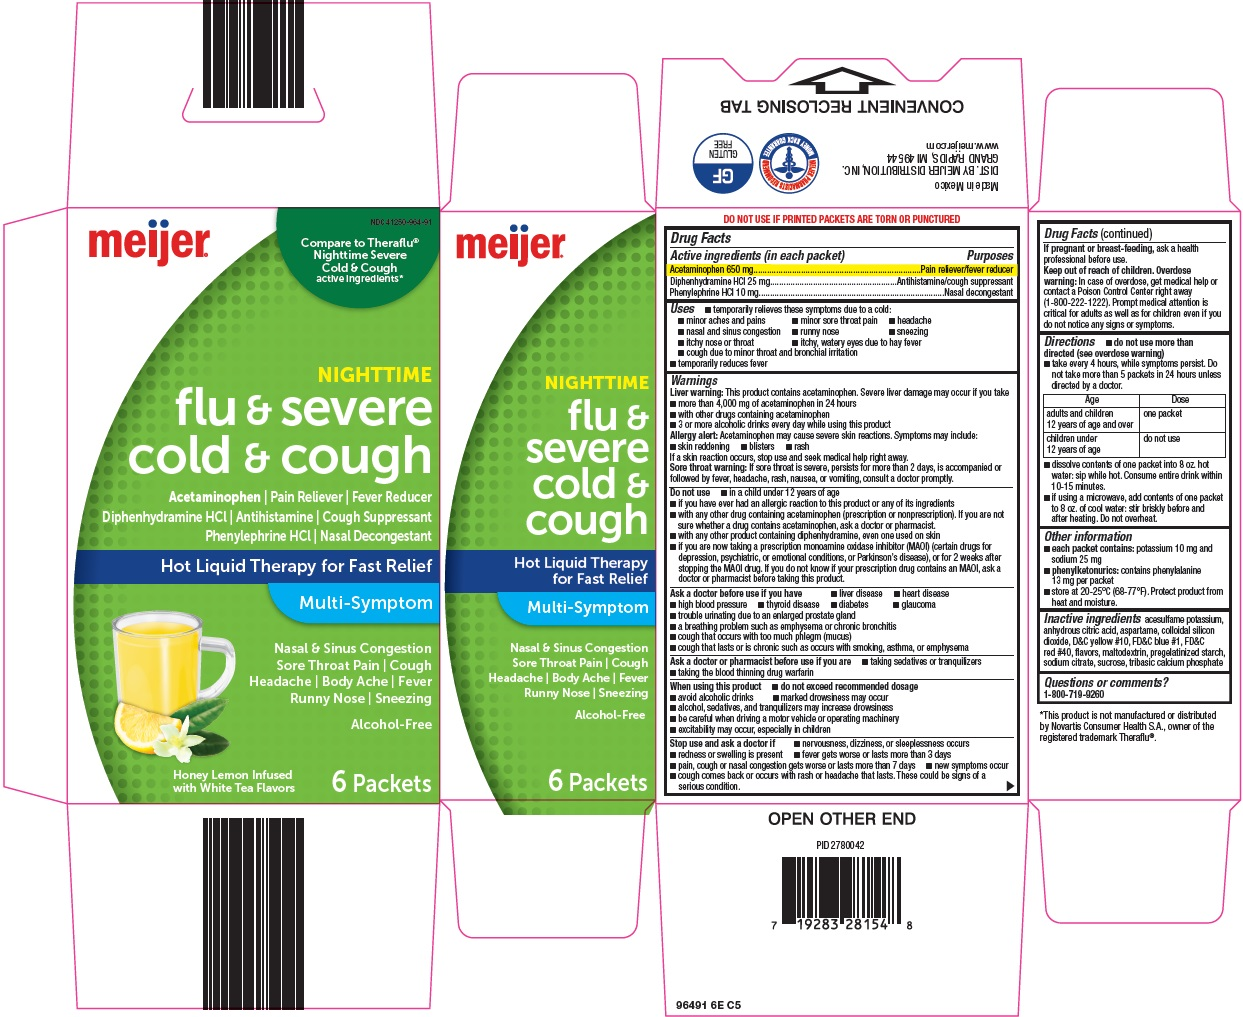 964-6e-flu-&-severe-cold-&-cough.jpg